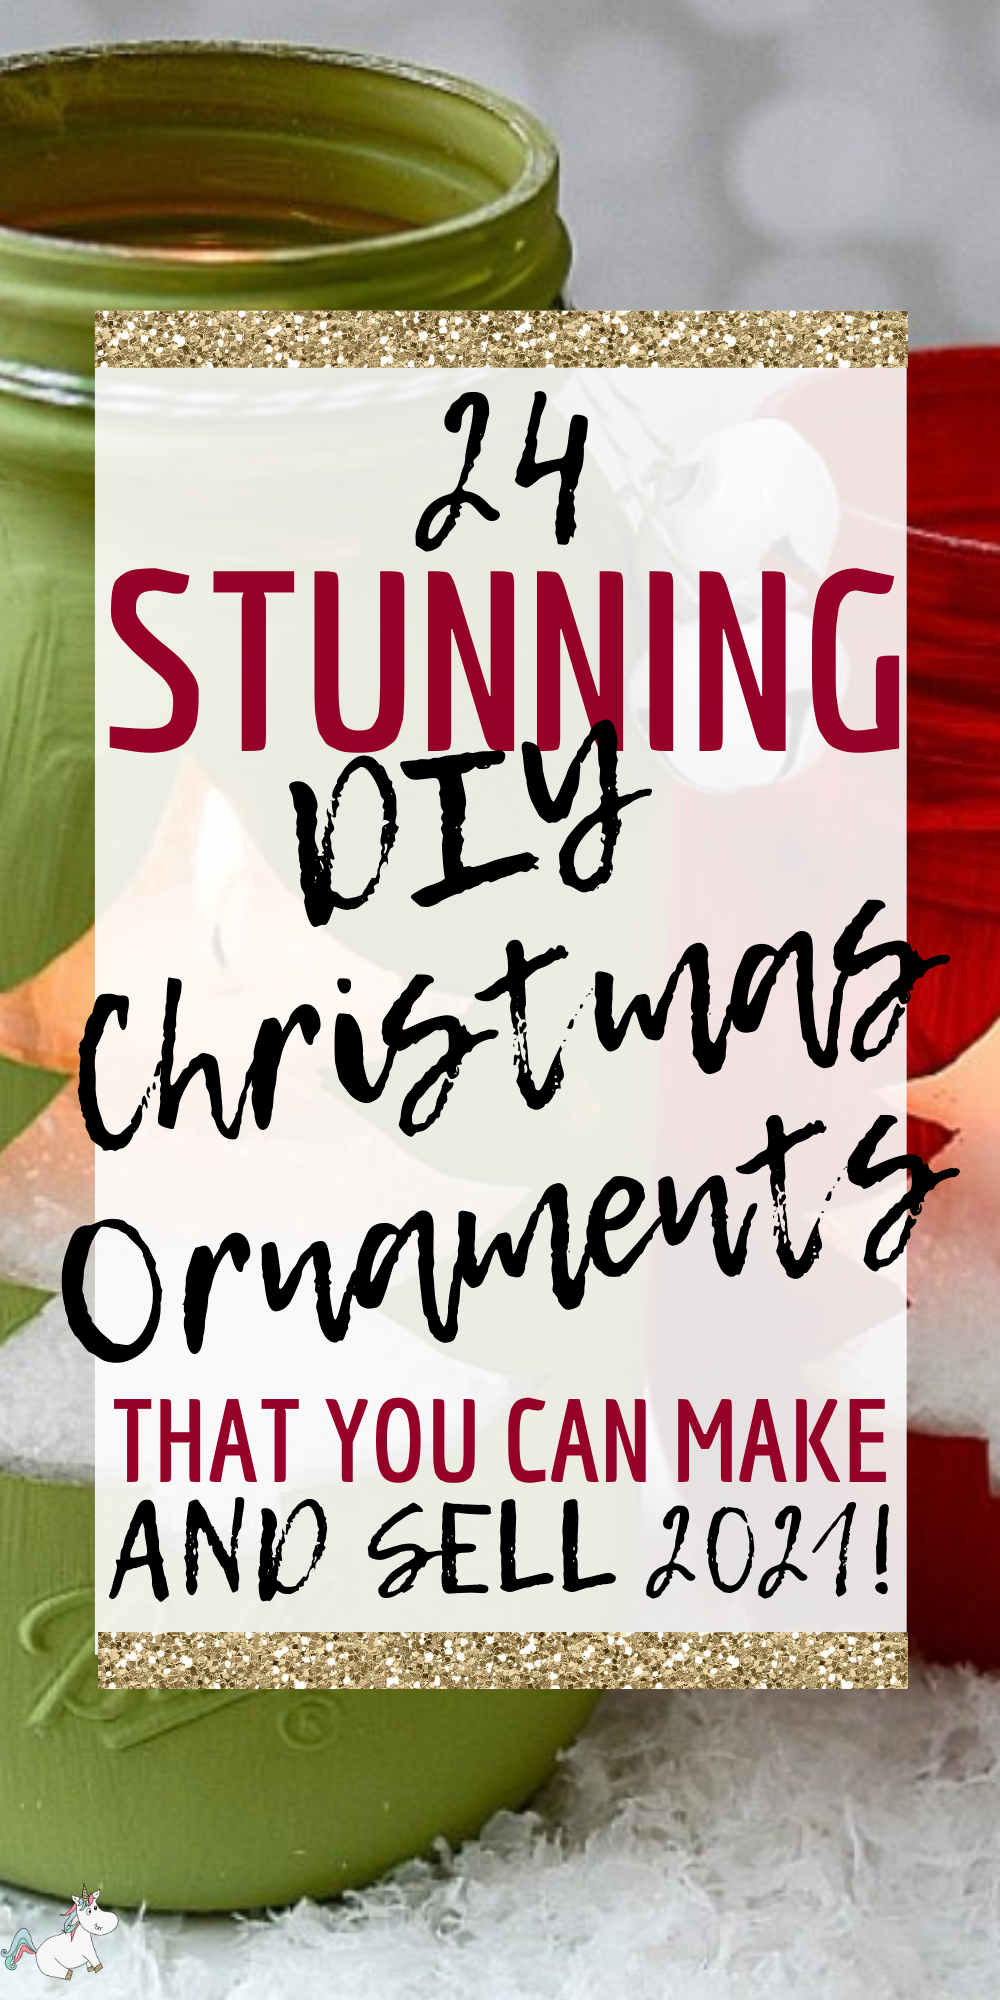 24 Beautiful Easy Christmas Ornaments You Can Make and Sell For Profit! The perfect DIY Christmas Decorations to make some extra cash this Holiday #diychristmasornaments #diychristmasdecorations #craftstomakeandsell